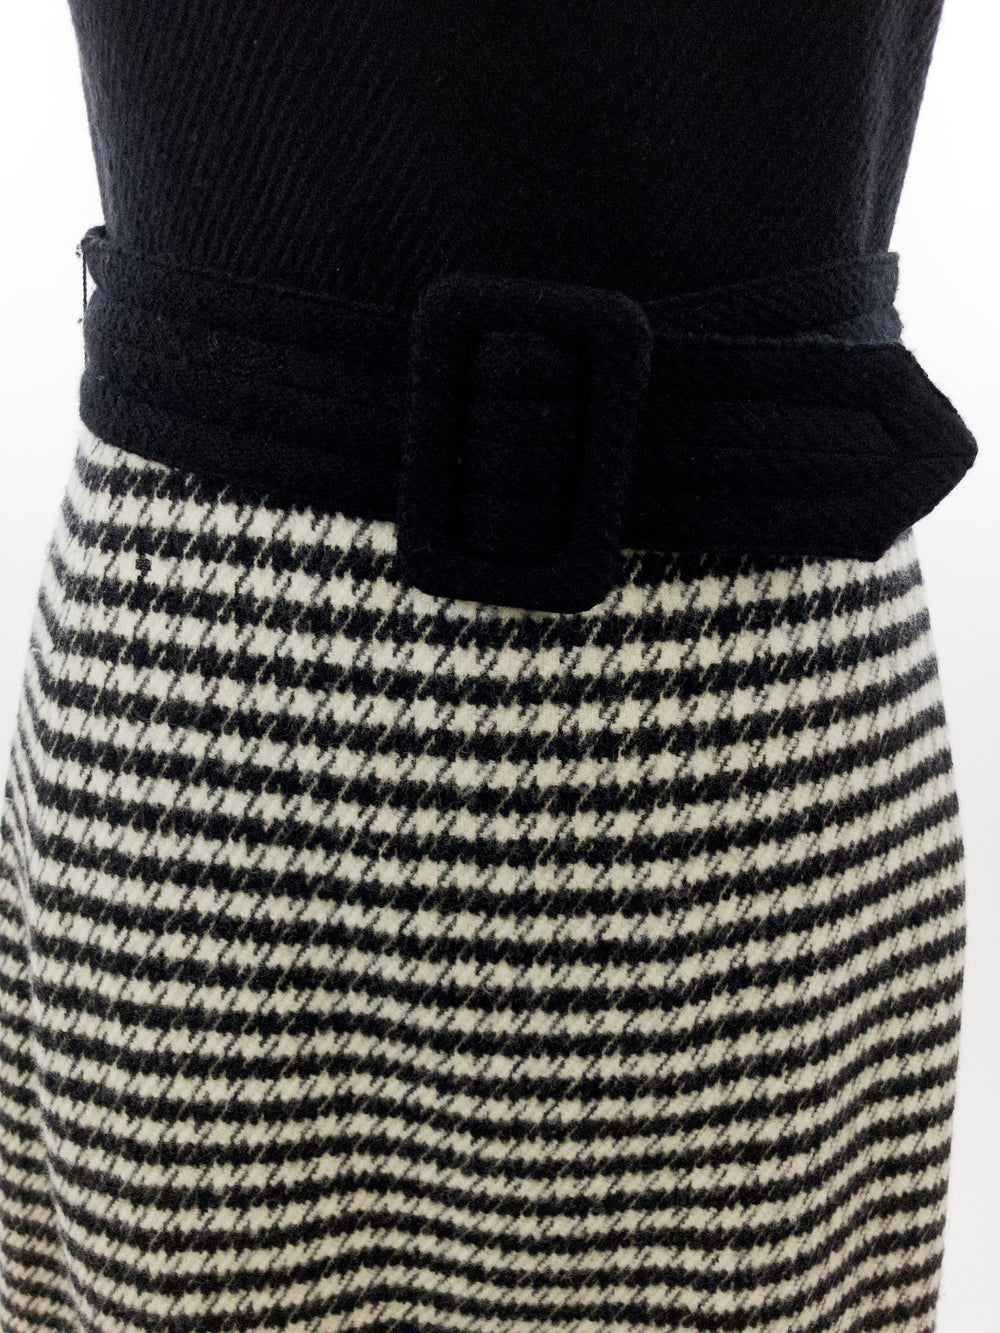 Ralph Lauren Wool & Cashmere Houndstooth Sheath Dress [Size 6] - ReLuxe.